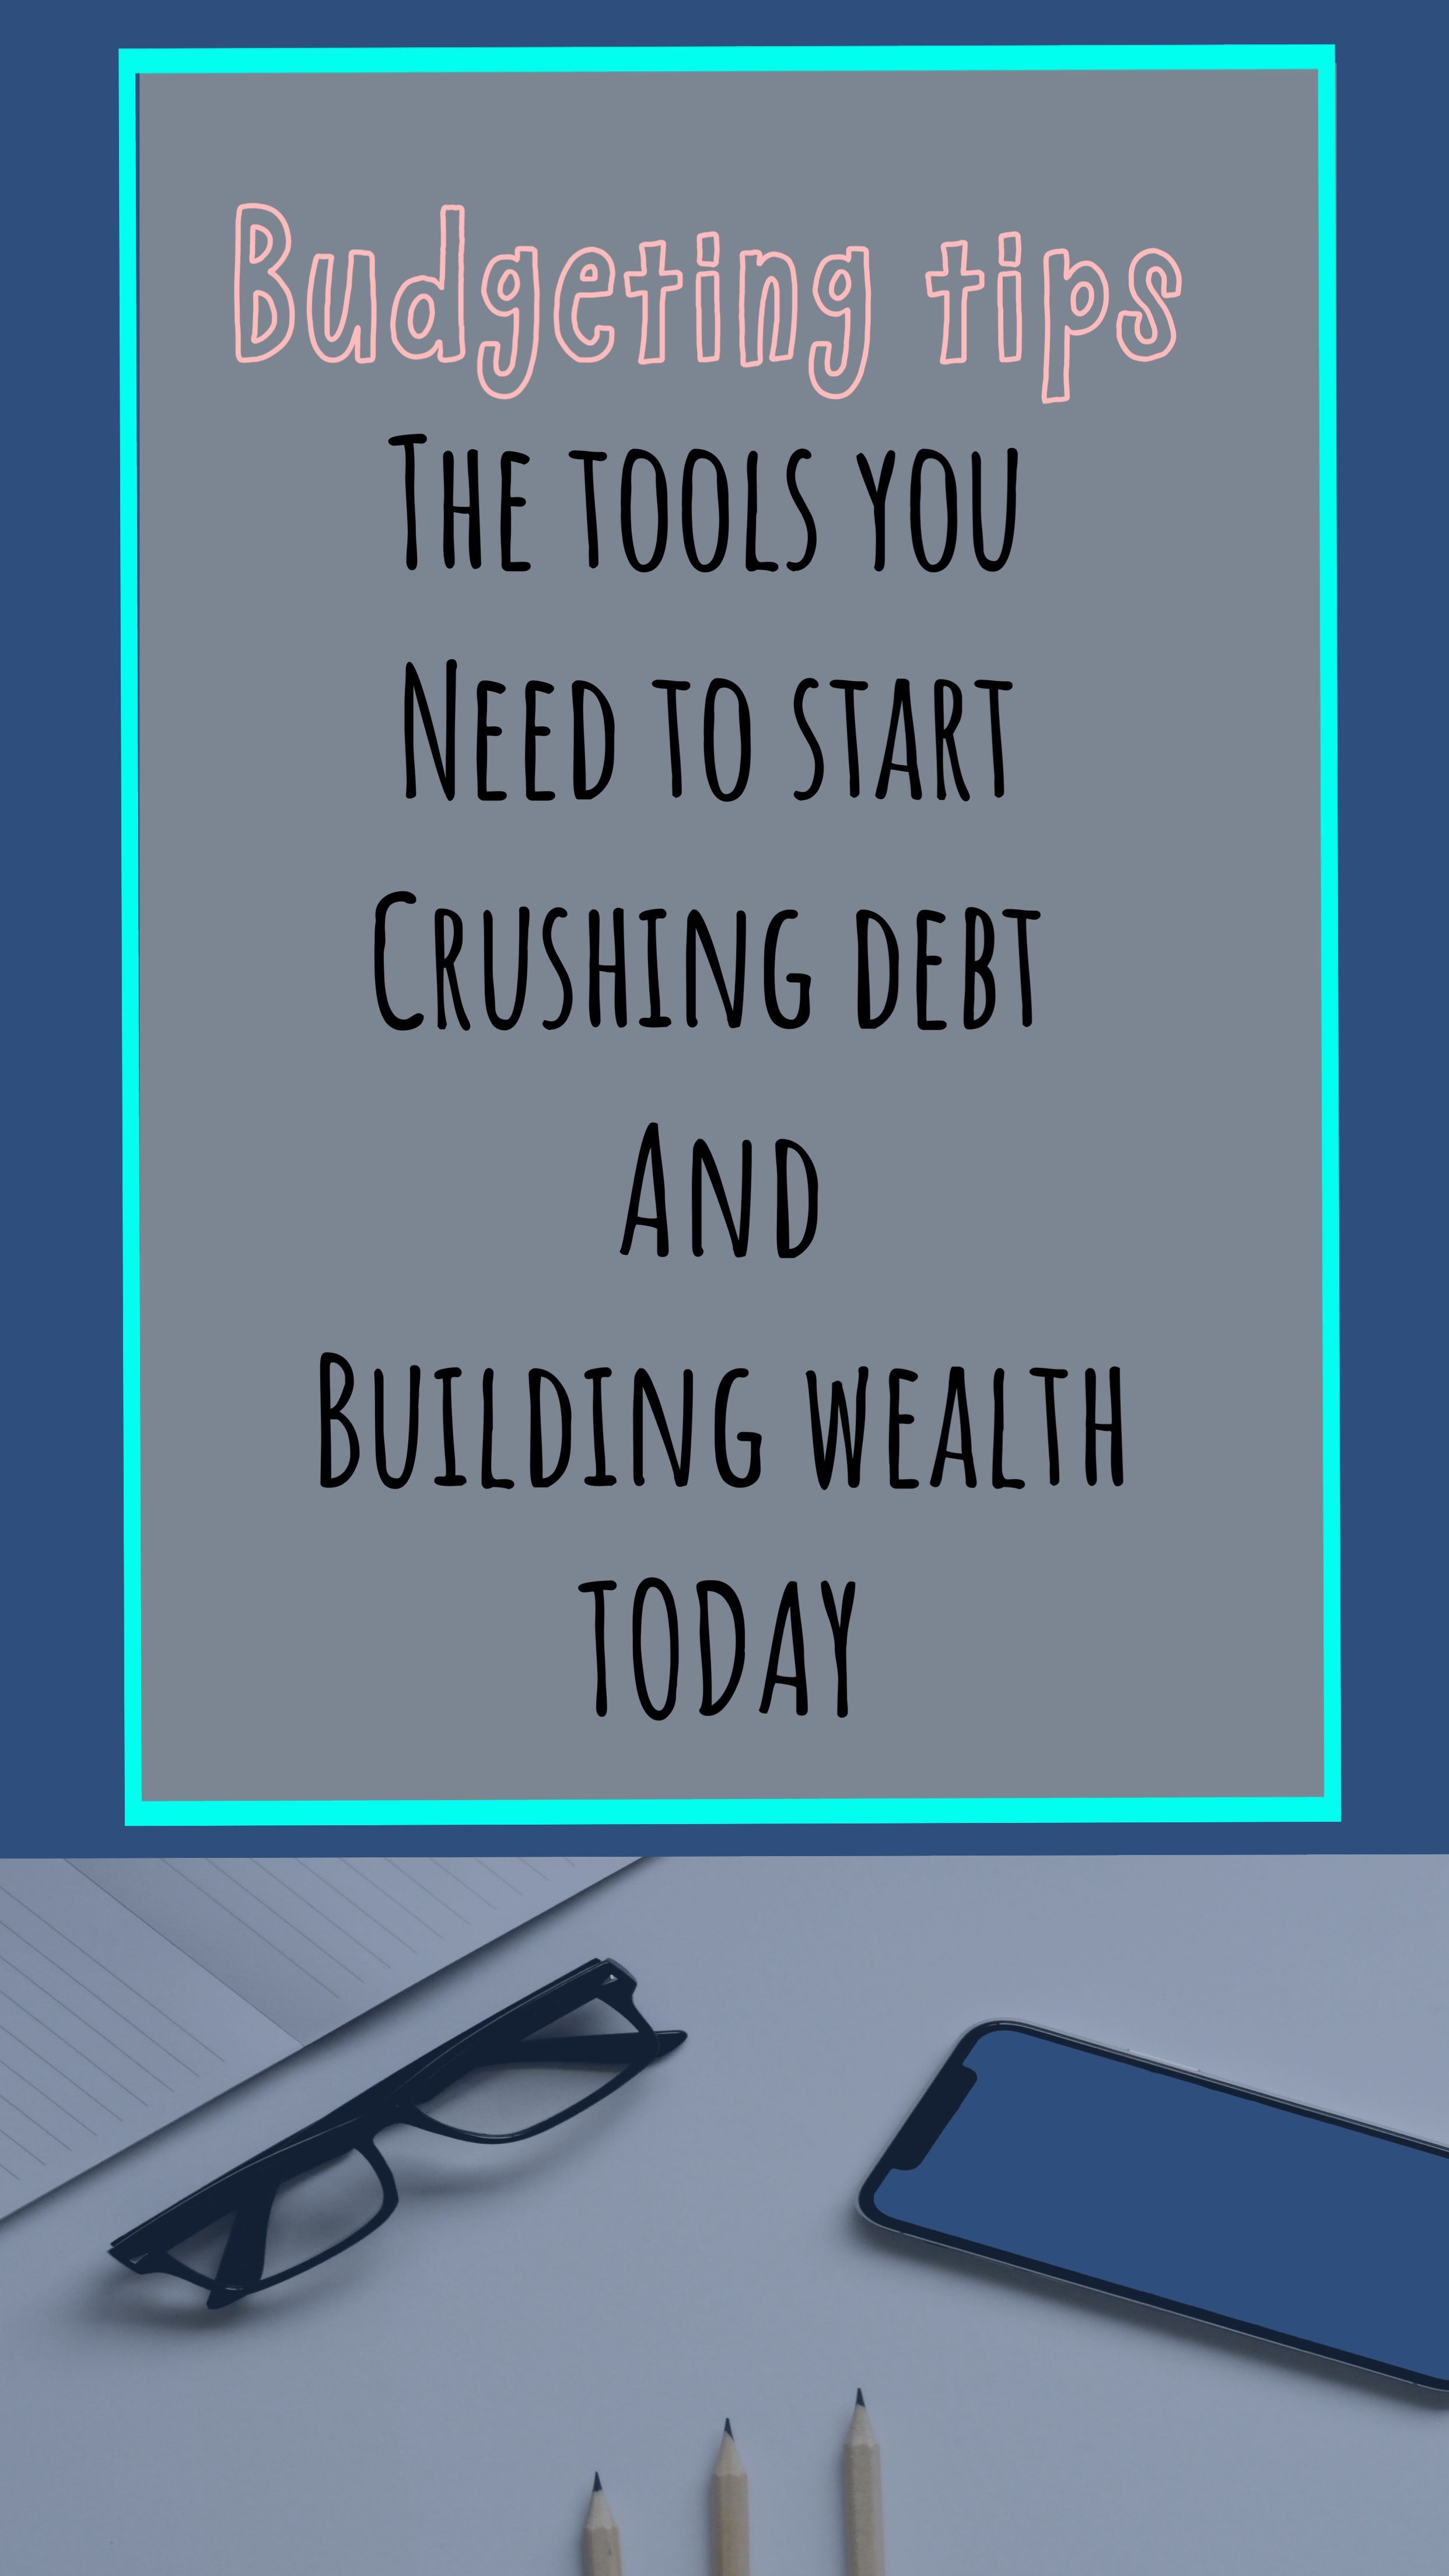 Budgeting Tips For Beginners The Tools You Need To Start